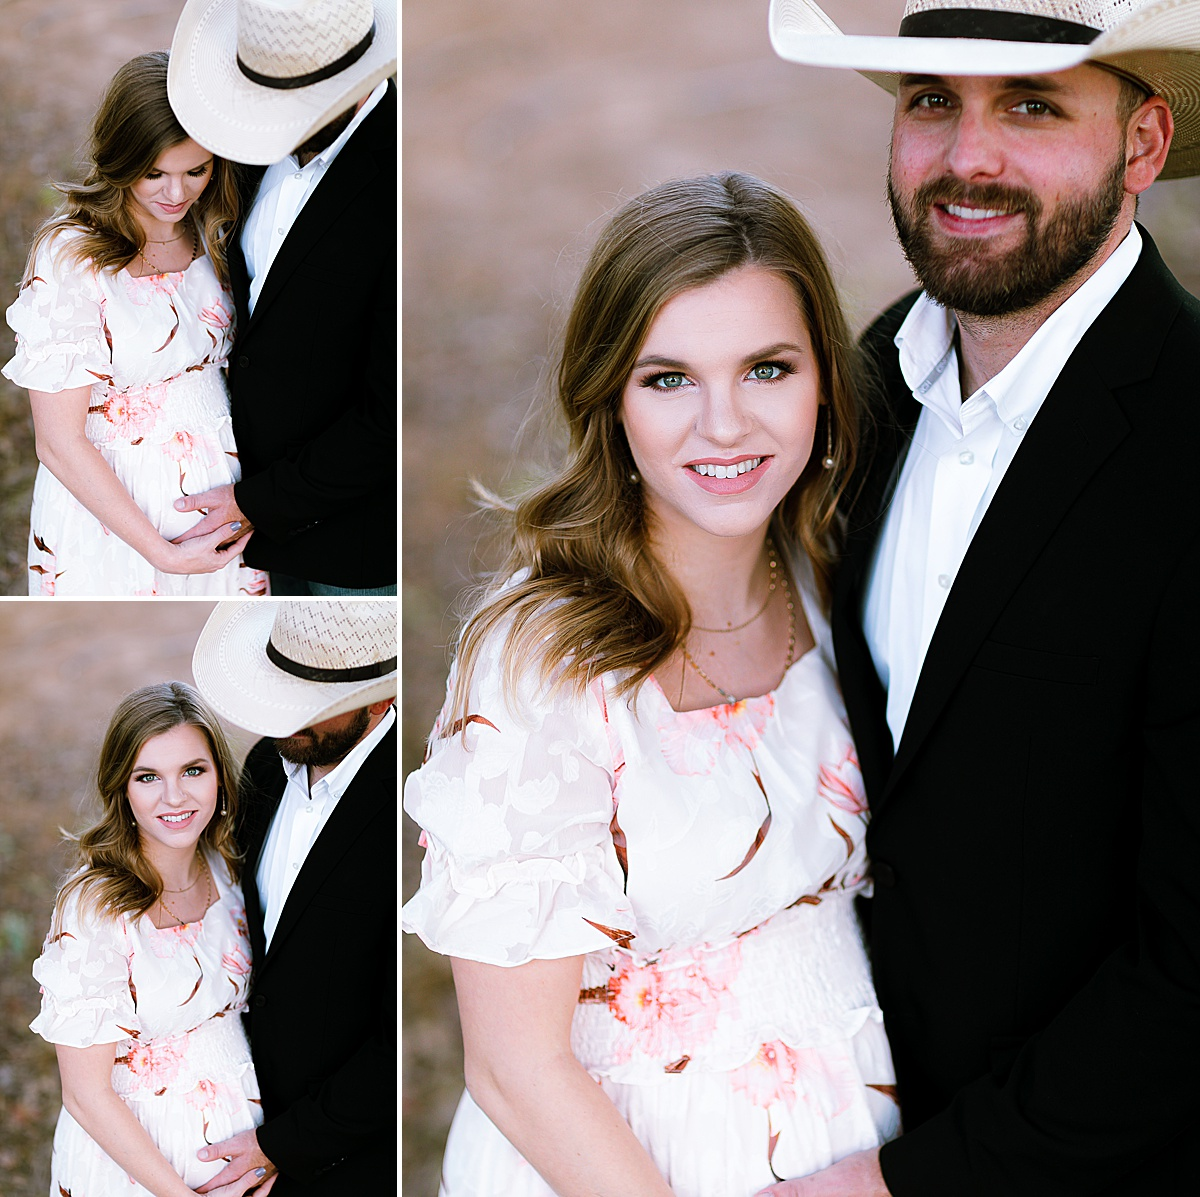 maternity-photo-session-lavernia-texas-carly-barton-photography_0010.jpg